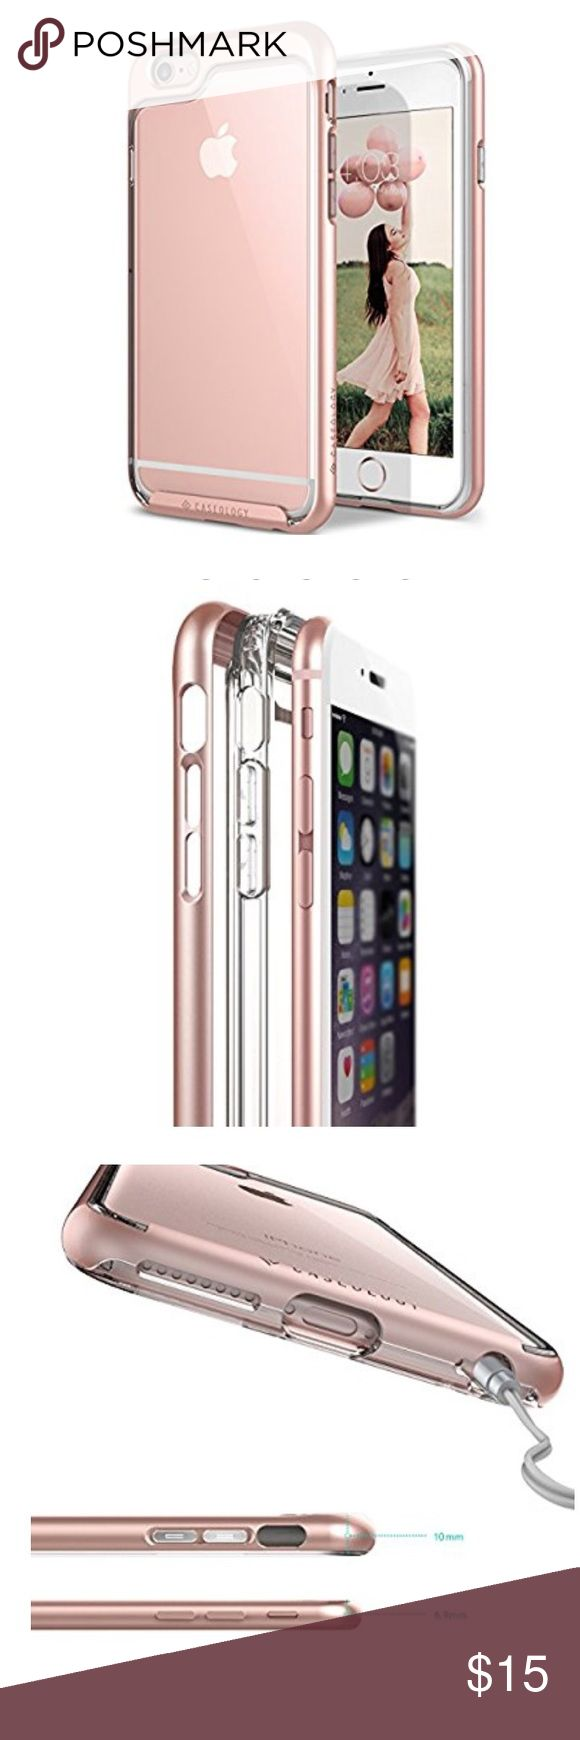 Rose Gold iPhone 6S Plus Case, by Caseology iPhone 6S Plus Case, Caseology [Skyfall Series] Transparent Clear Enhanced Grip [Rose Gold] [Slim Cushion] for Apple iPhone 6S Plus & iPhone 6 Plus. Used condition with some scratches on corners. A beautiful case. Caseology Accessories Phone Cases